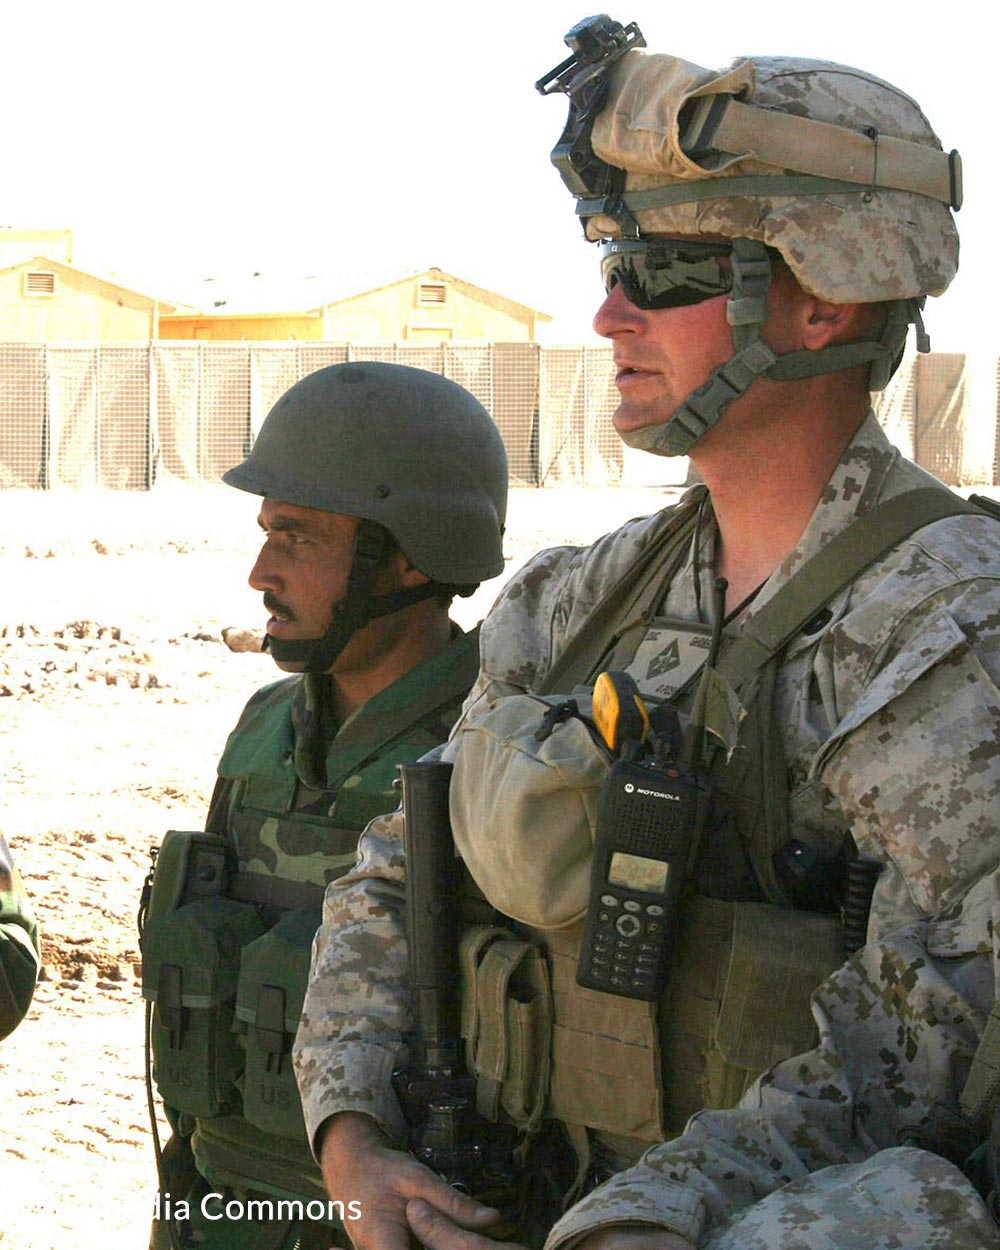 Veterans of war share a common bond that civilians may not understand.